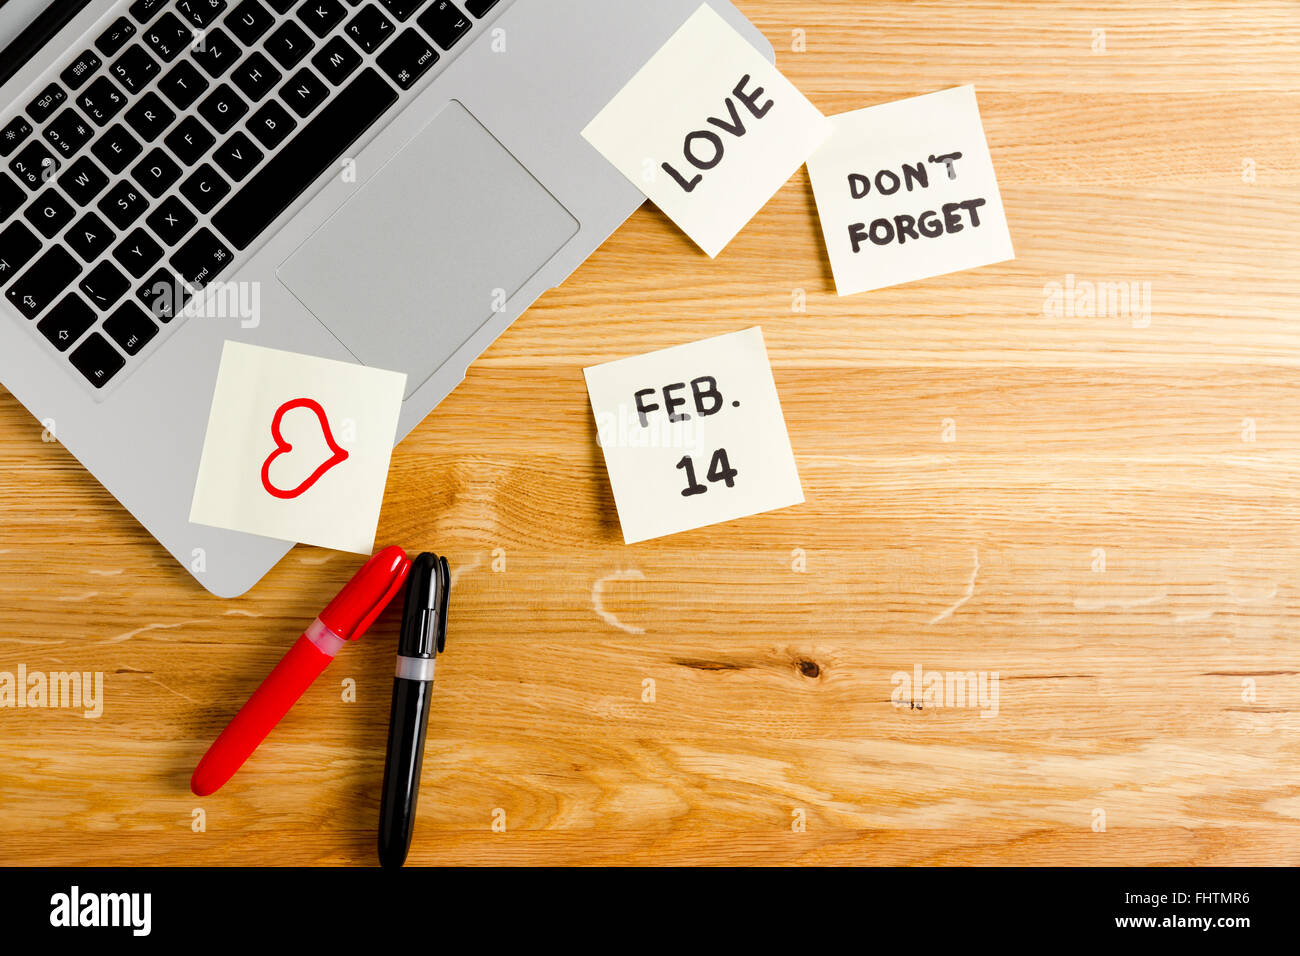 Don't forget on Valentine's Day message on the laptop - Stock Image